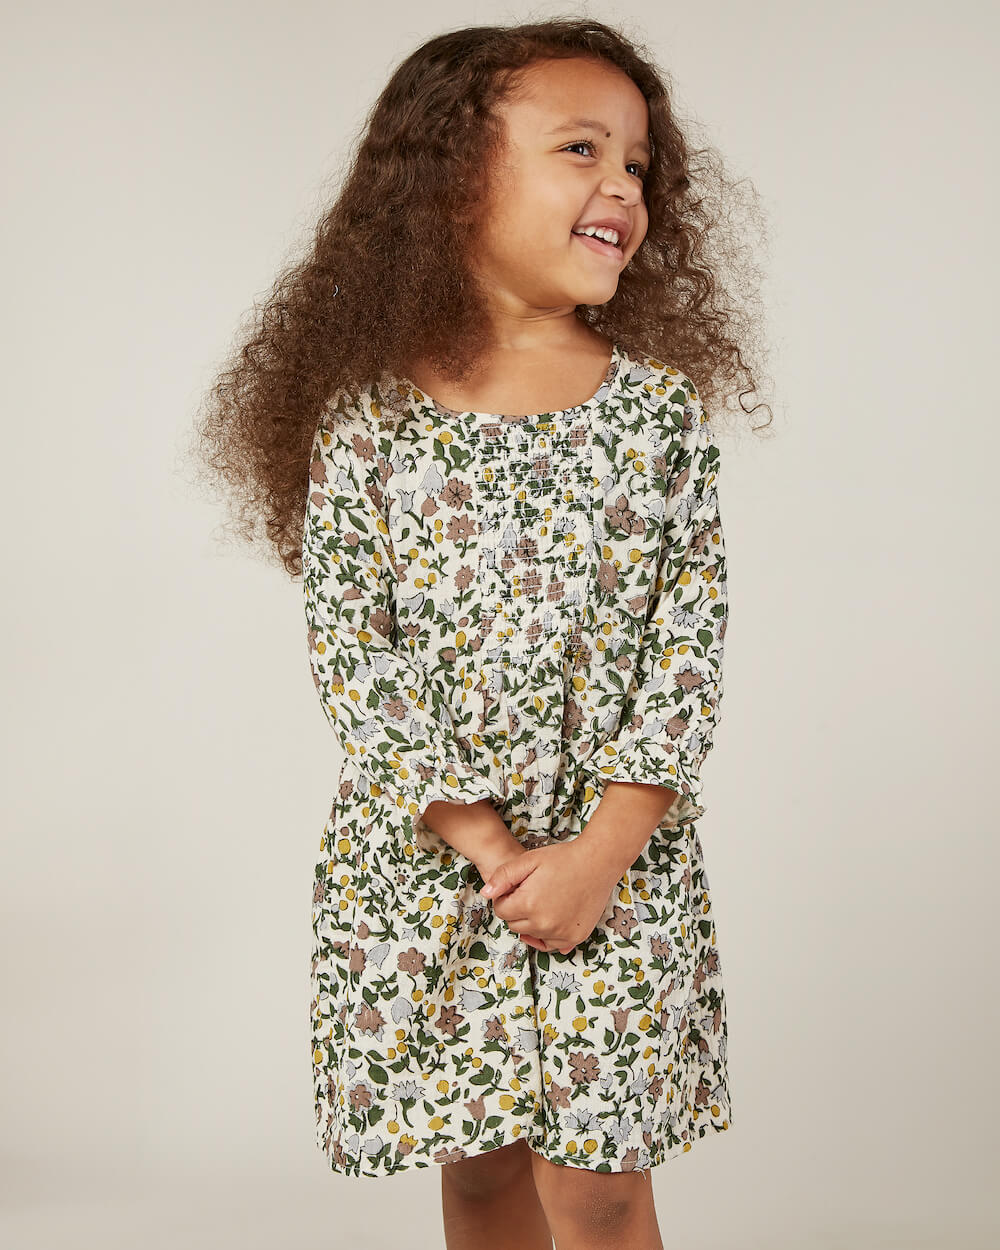 Rylee and Cru Sadie Dress Enchanted Forest | Tiny People